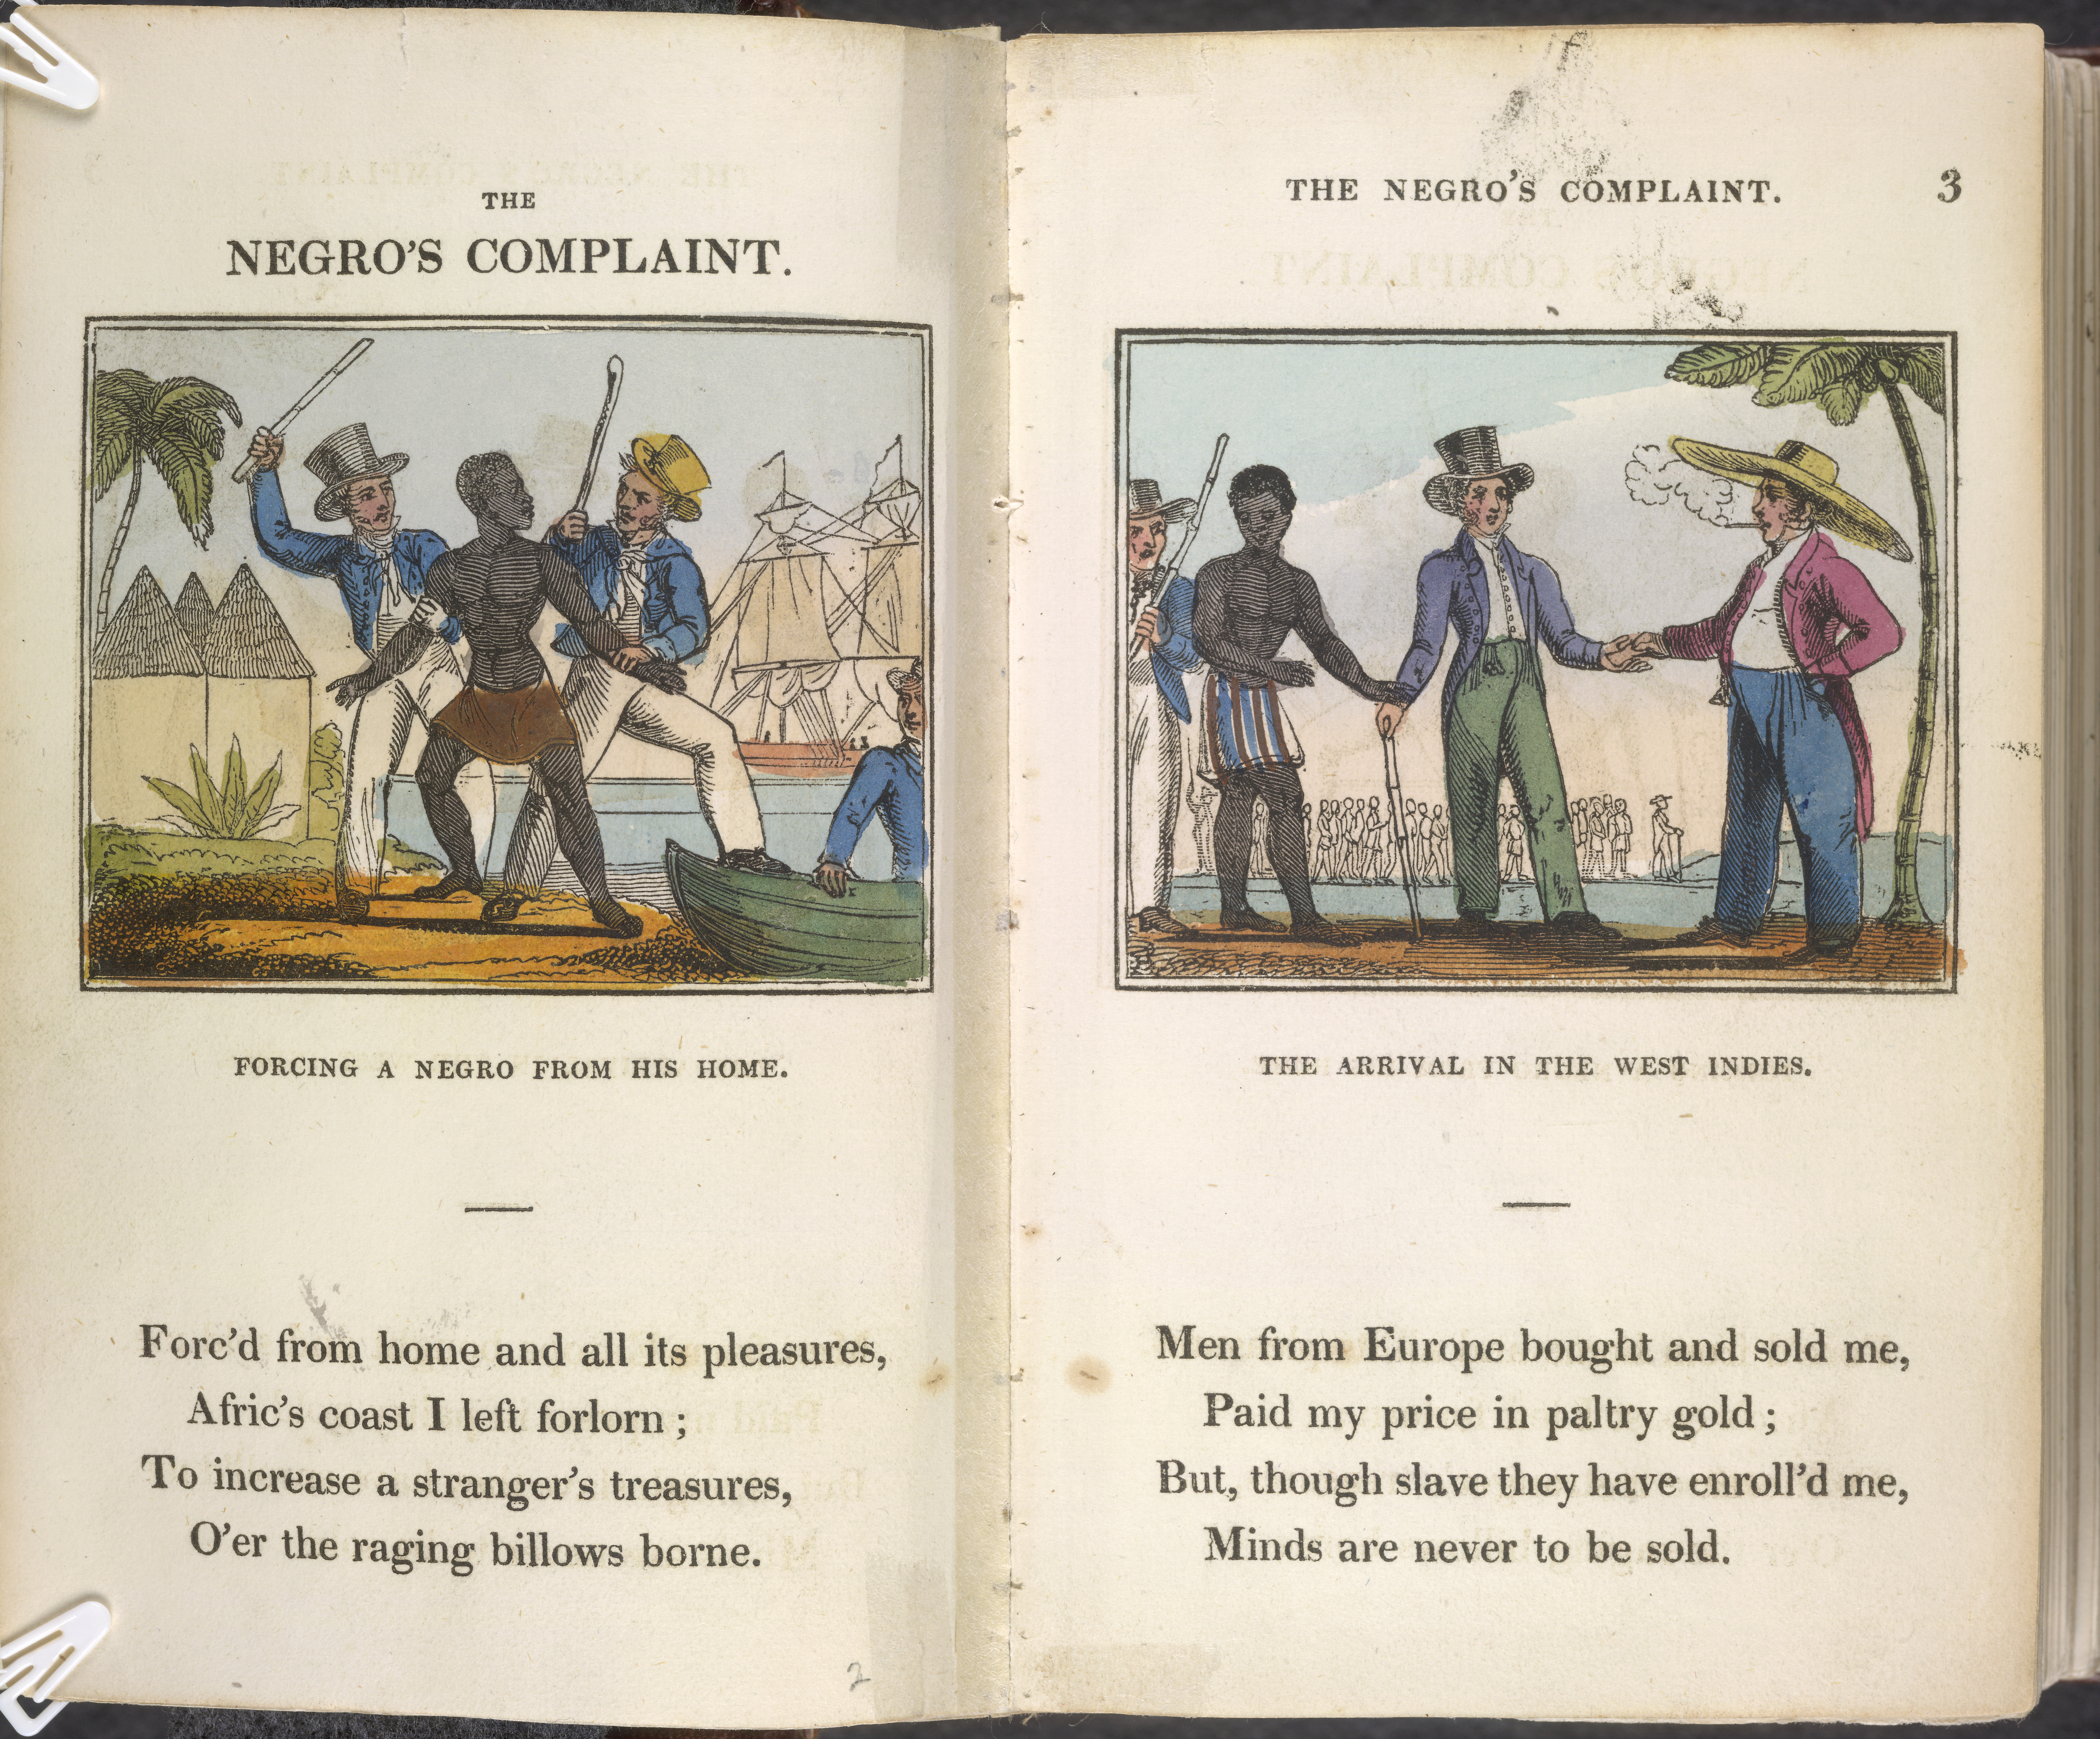 Double page spread with a stanza of a poem and a coloured woodcut on each page showing white plantation owners with a black slave.